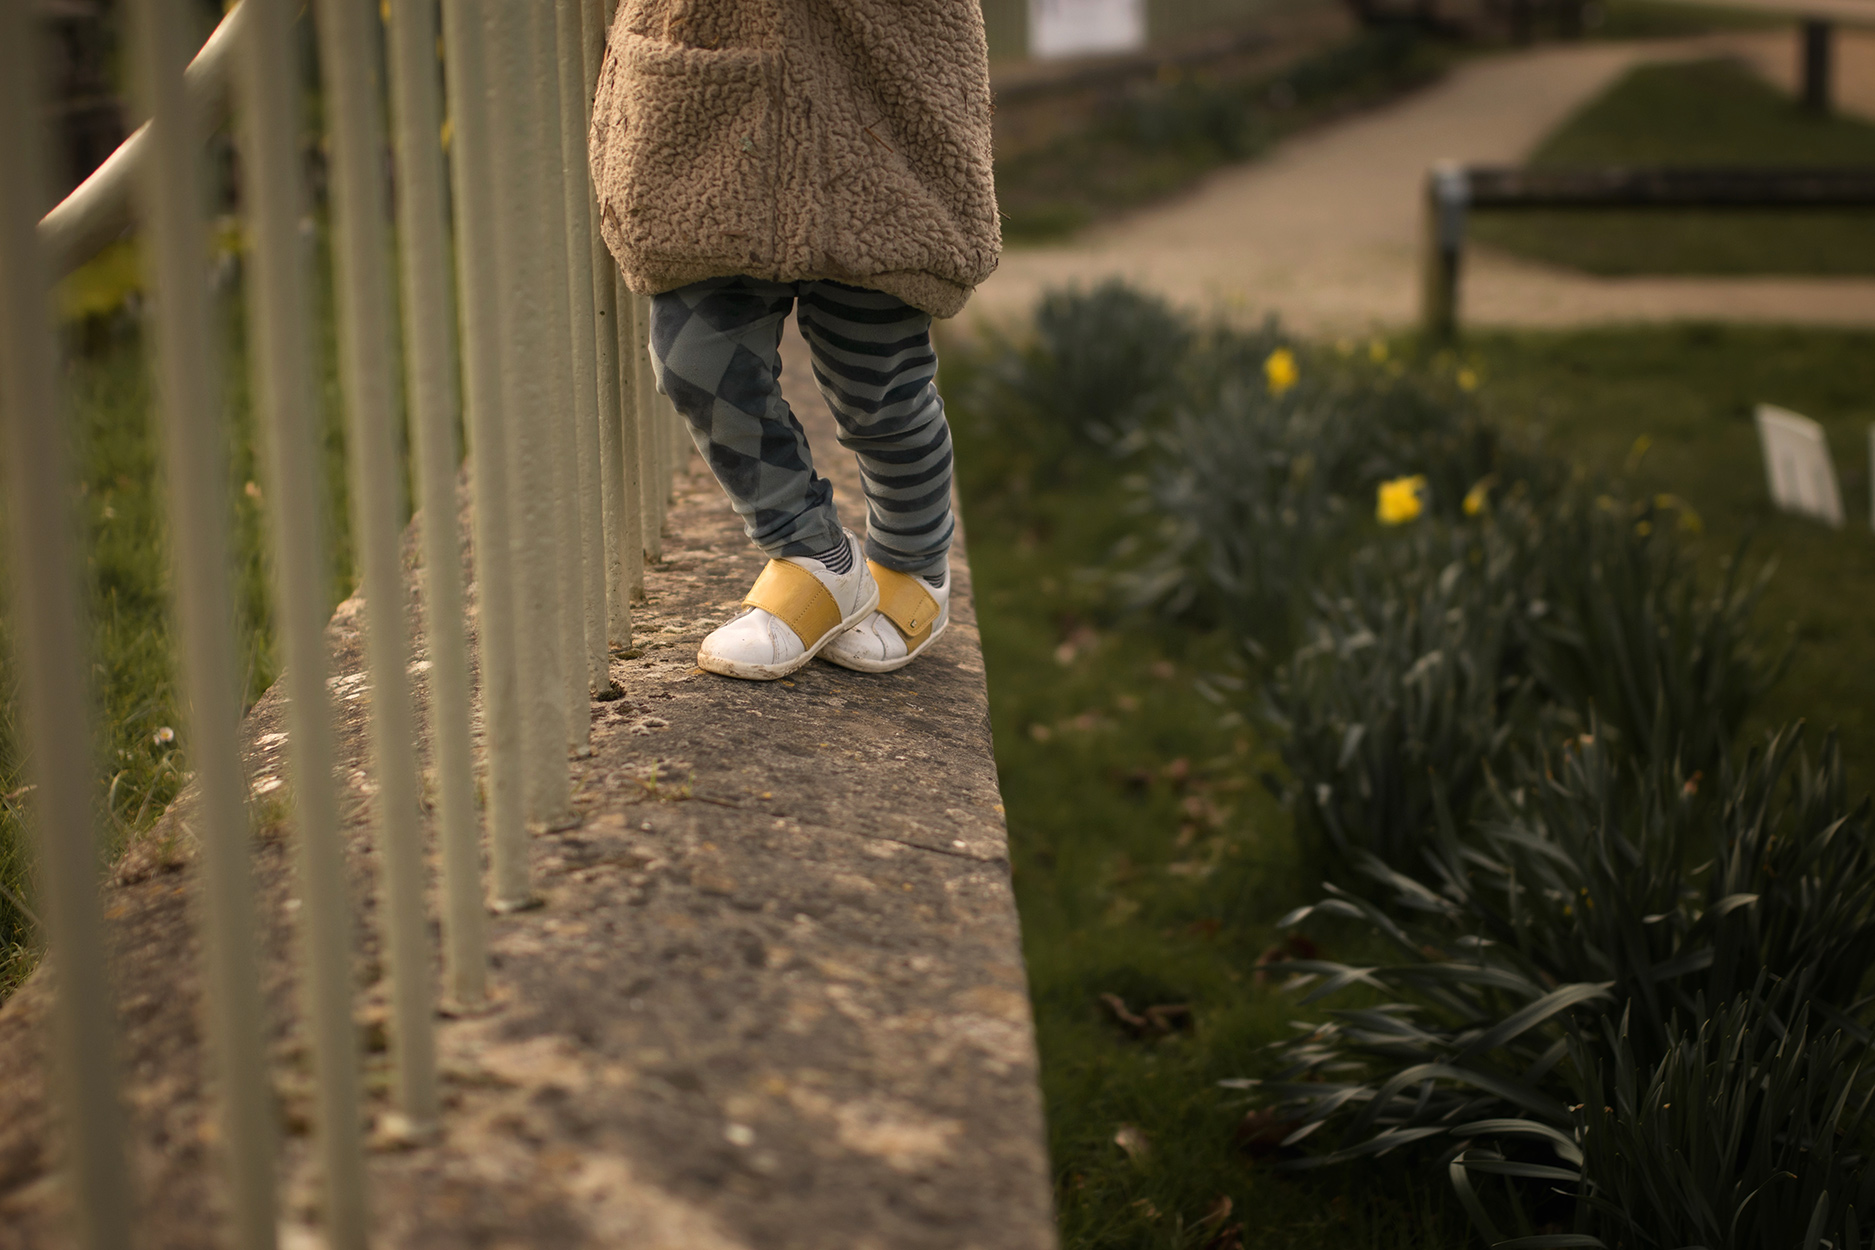 Candid family day in the life photoshoot | Toddler wearing Rylee and Cru fur coat wearing Bobux yellow stripe boston trainers climbing along wall at the park